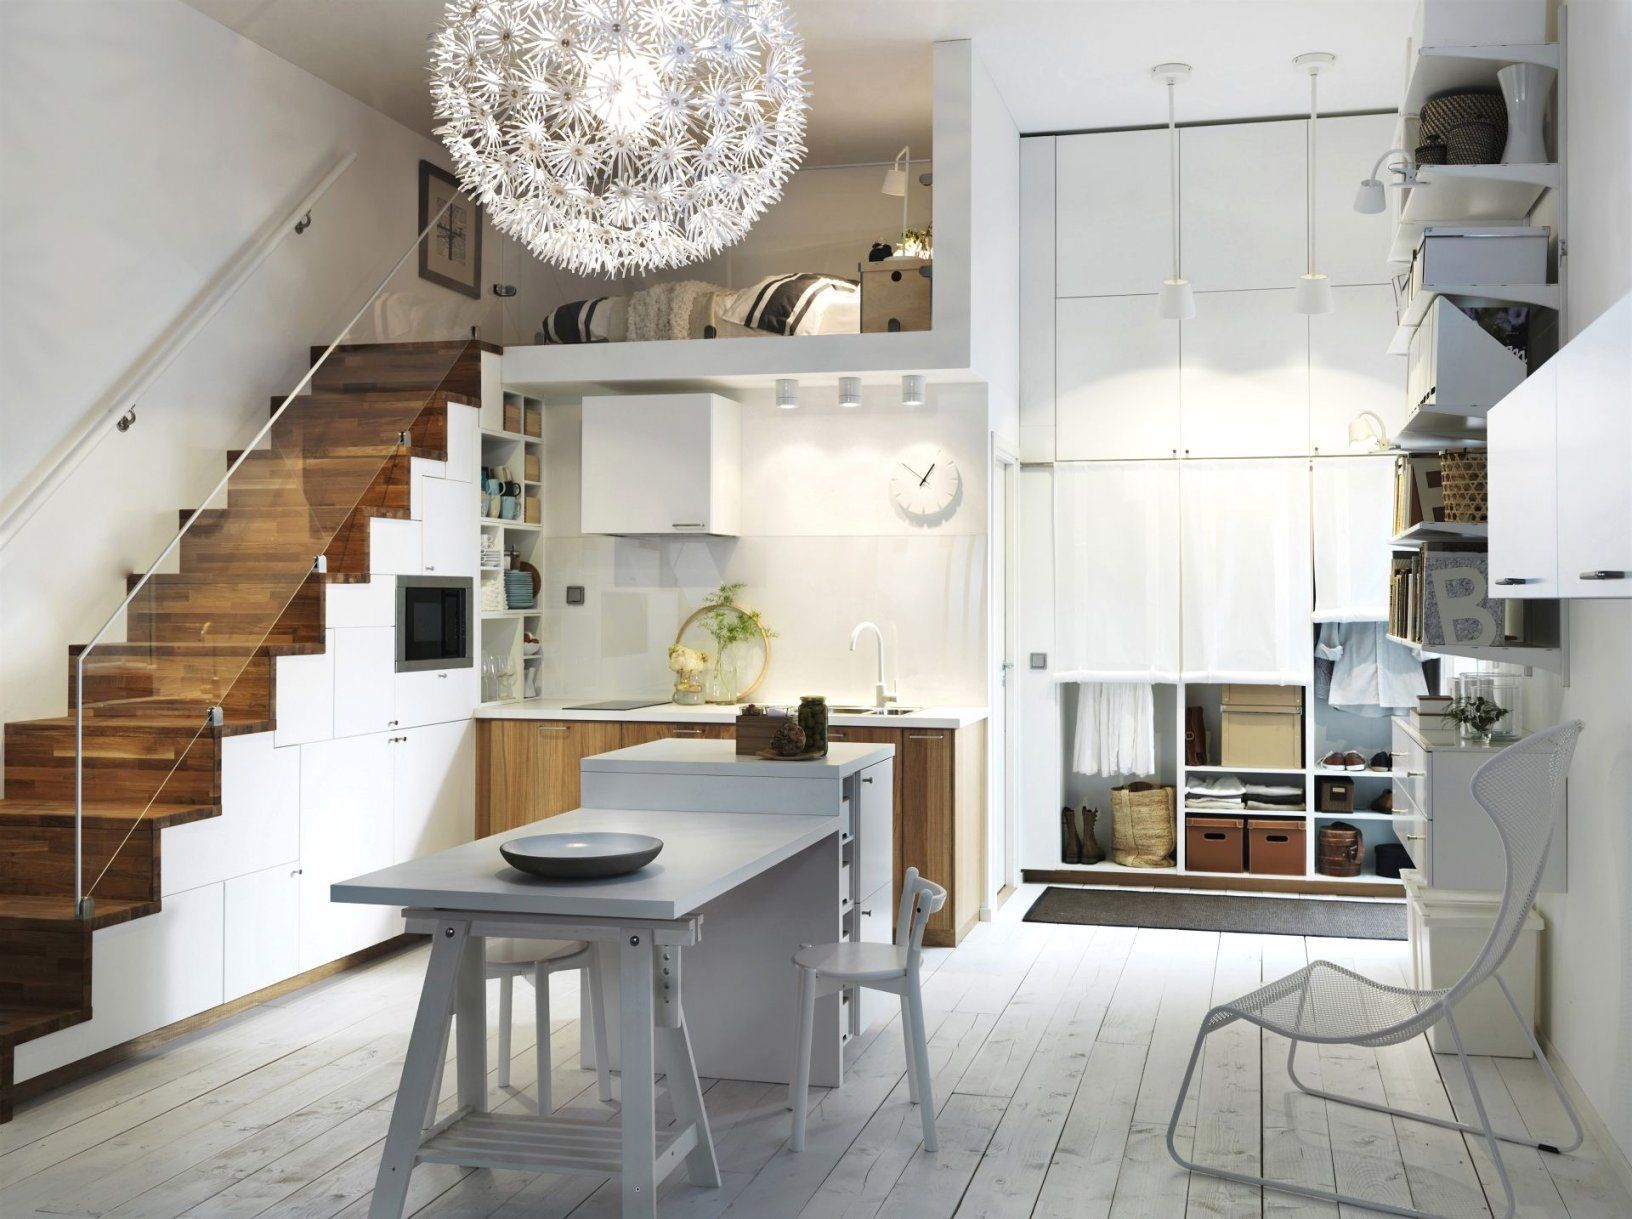 30 Qm Wohnung Einrichten Haus Design Ideen Inside Wohndesign Ideen Scandinavian Kitchen Design Small Space Kitchen Tiny House Living